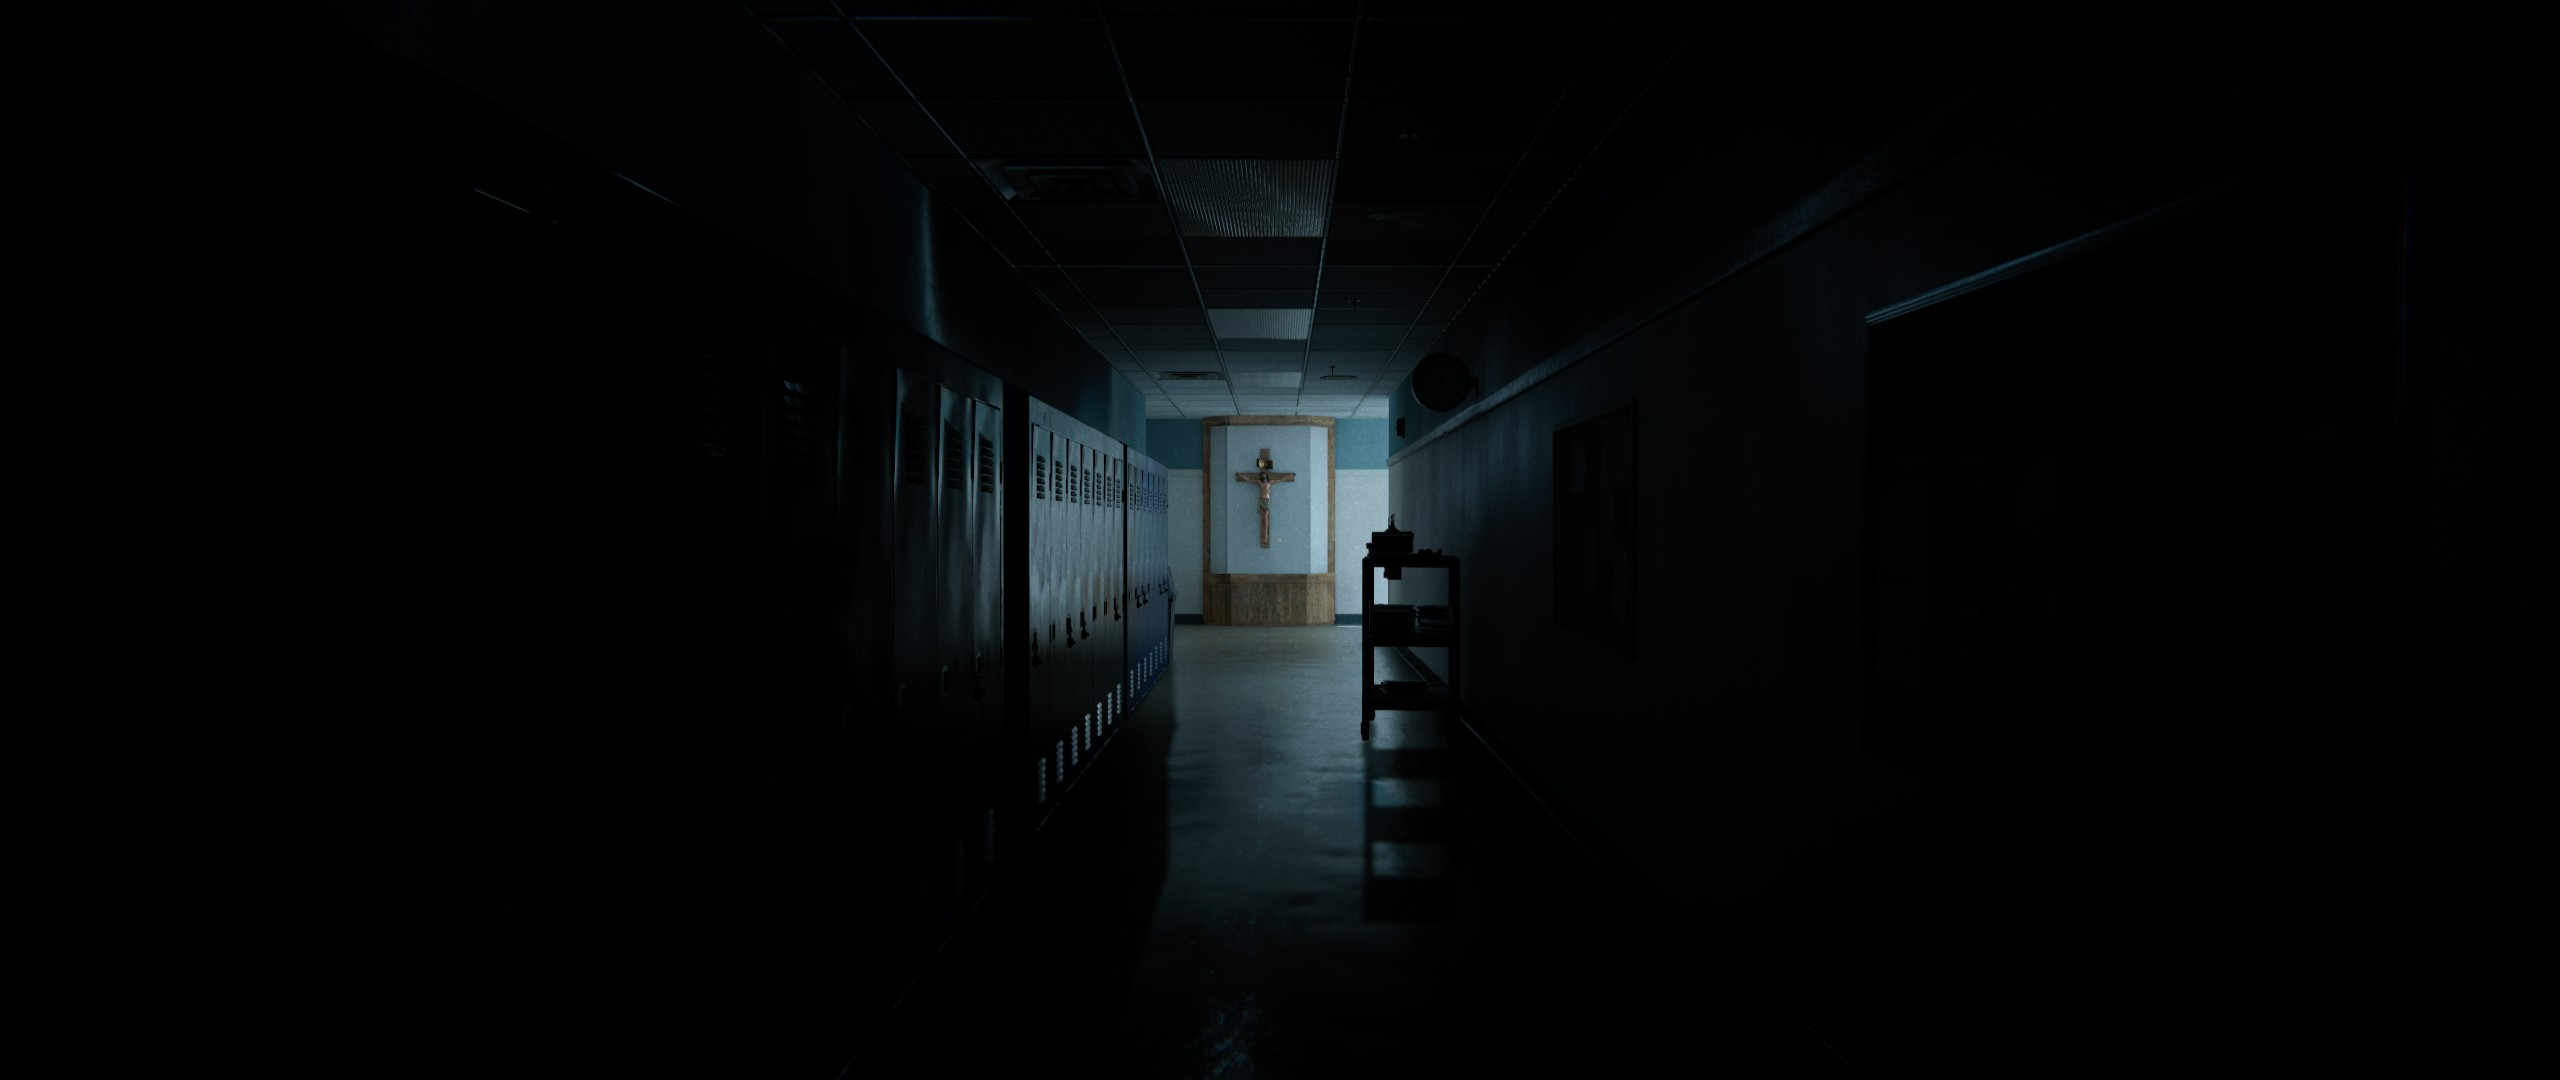 outlast 2 full hd wallpaper and background   2560x1080   id:827689